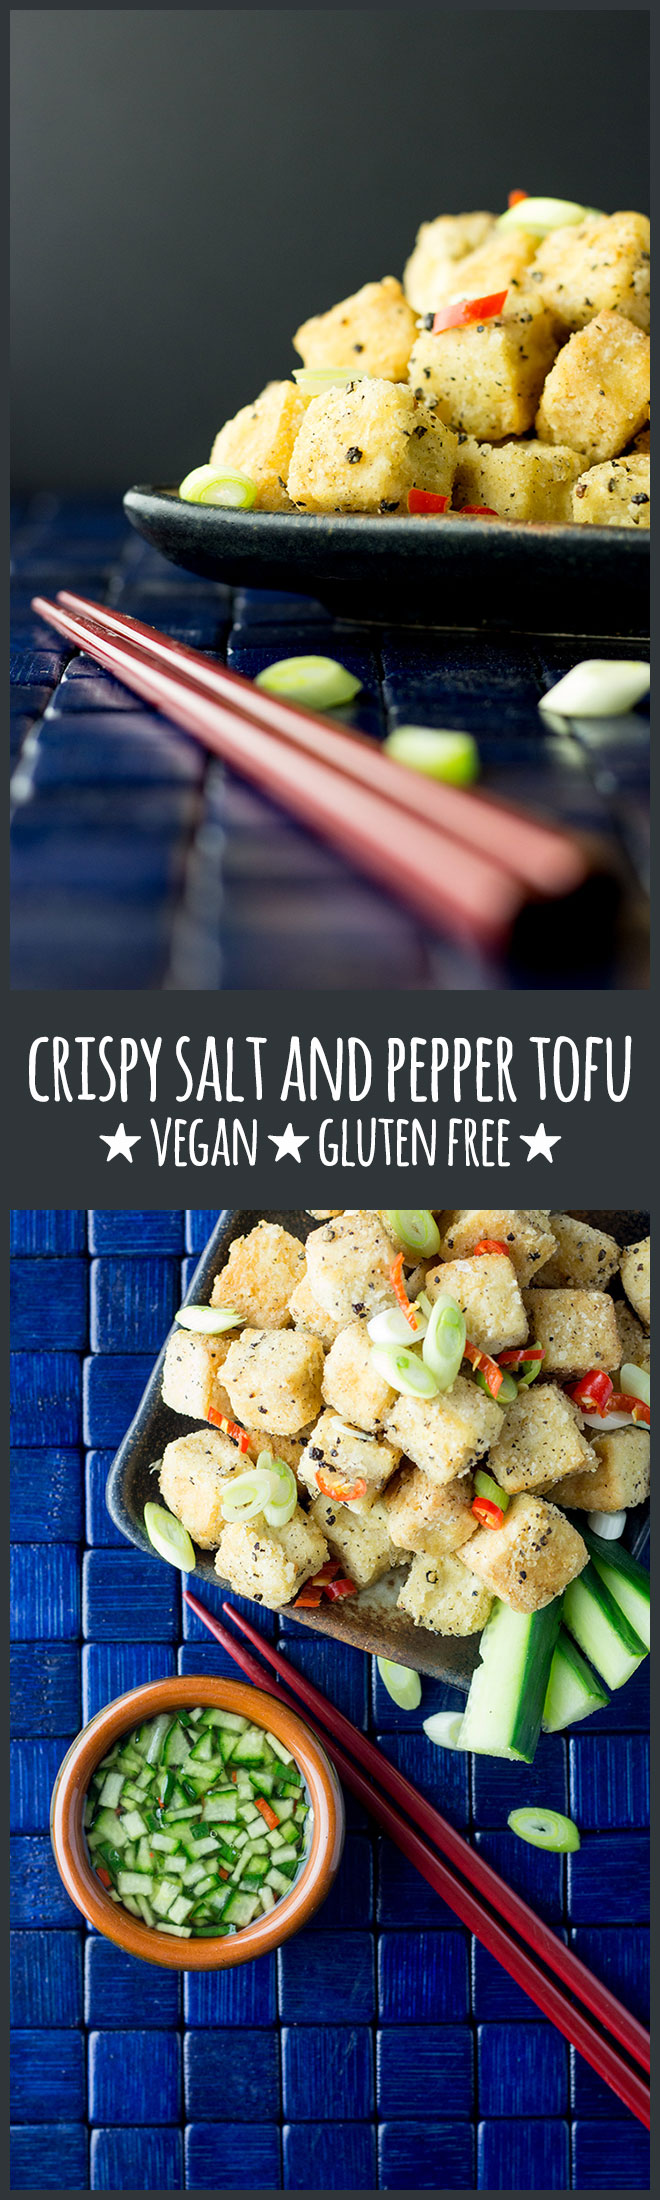 Crispy salt and pepper tofu with a cucumber and chilli dipping sauce is a moreish little nibble to have with drinks, or serve it up with sticky rice and steamed greens for a simple but yummy dinner.